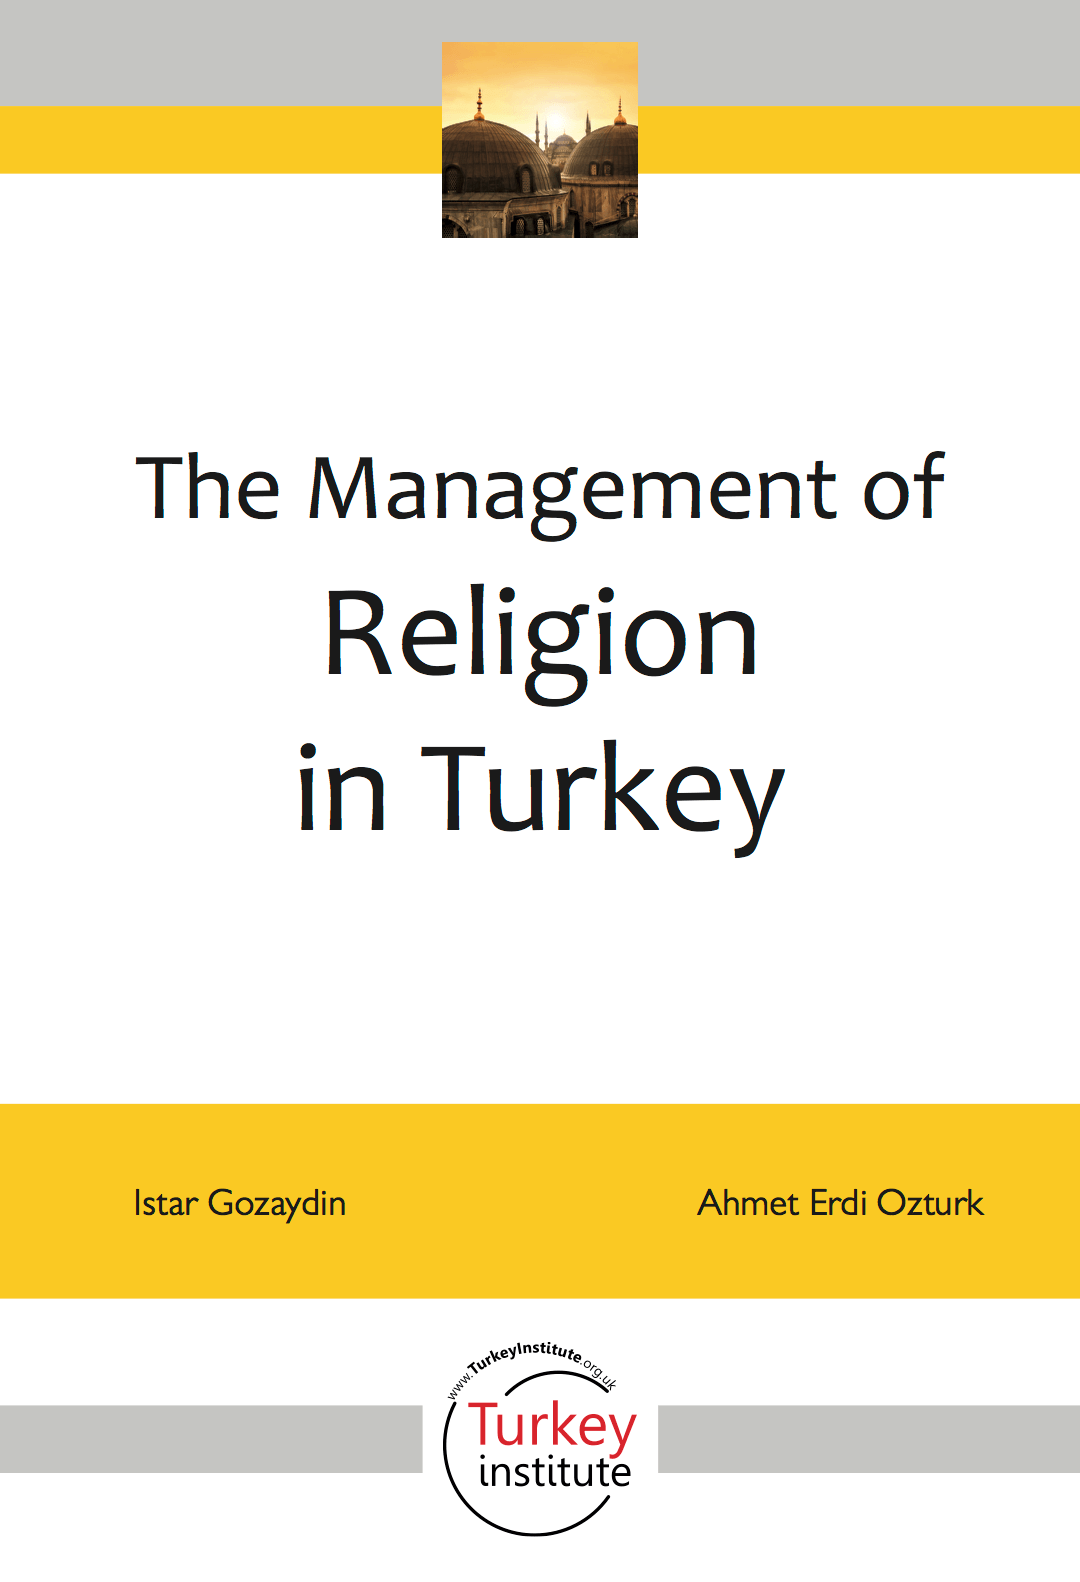 The Management of Religion in Turkey